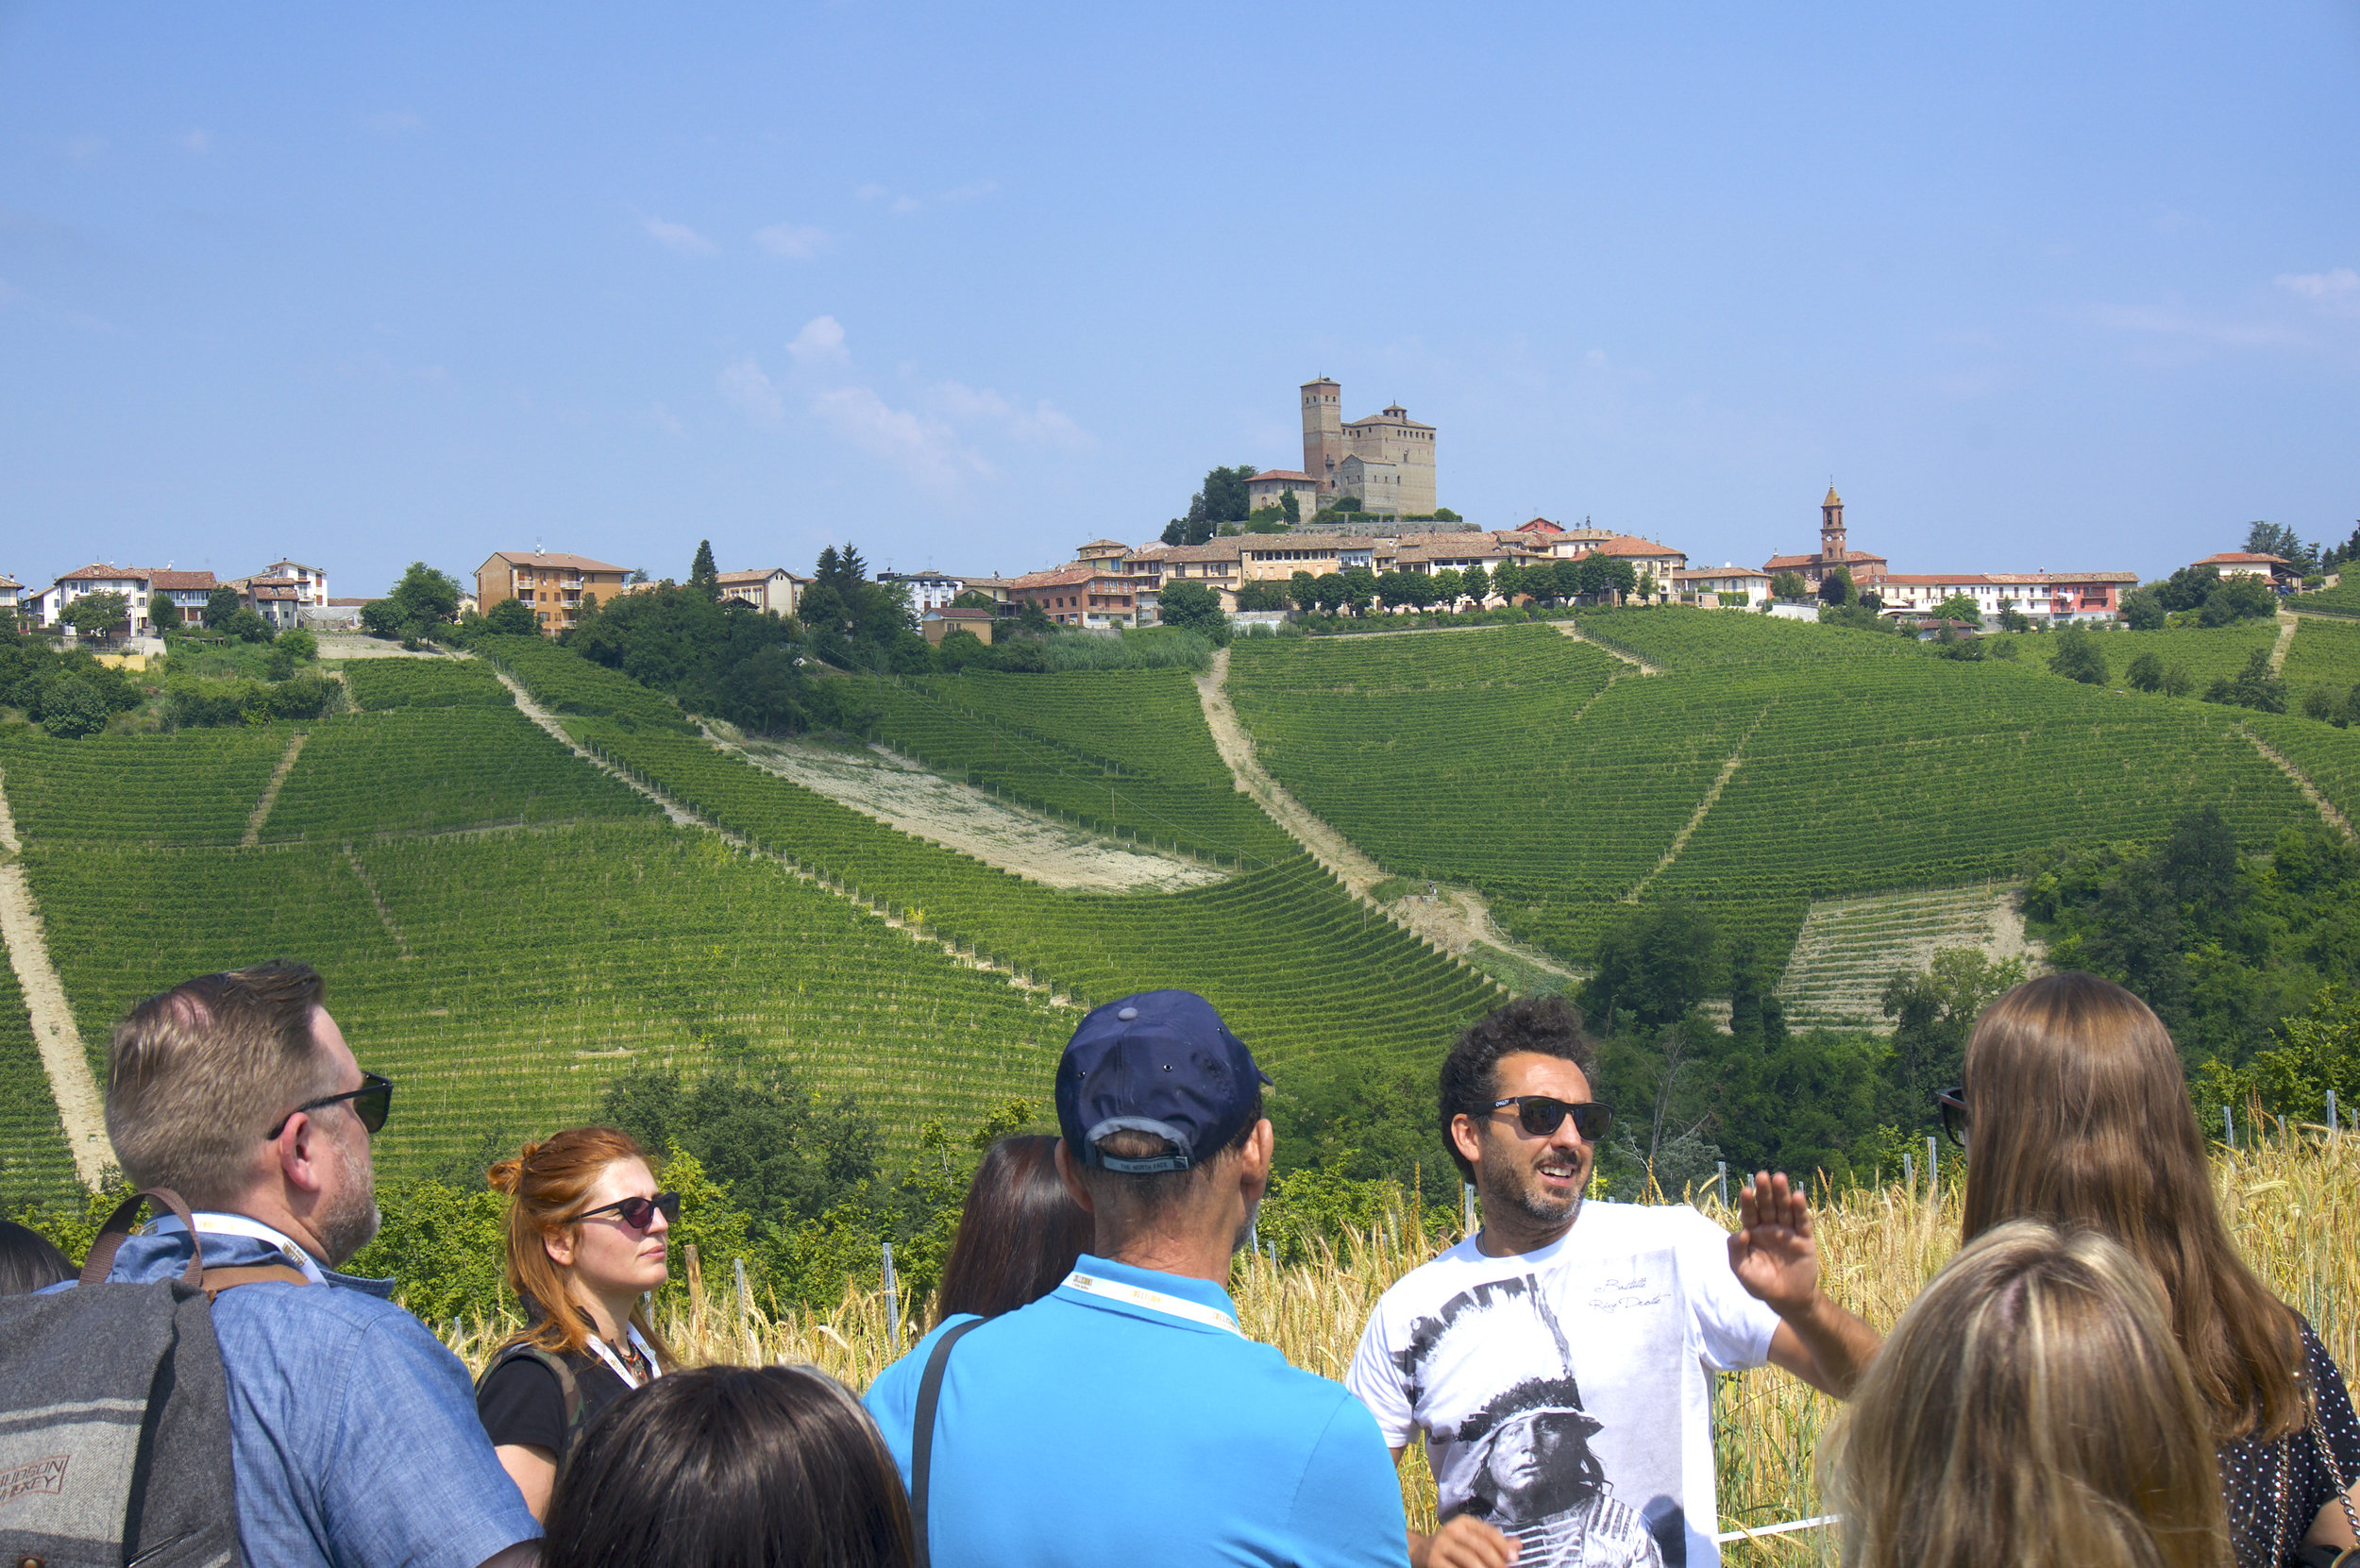 Foreground: Enrico Rivetto amongst his wheat and vines. Background: Serralunga d'Alba.